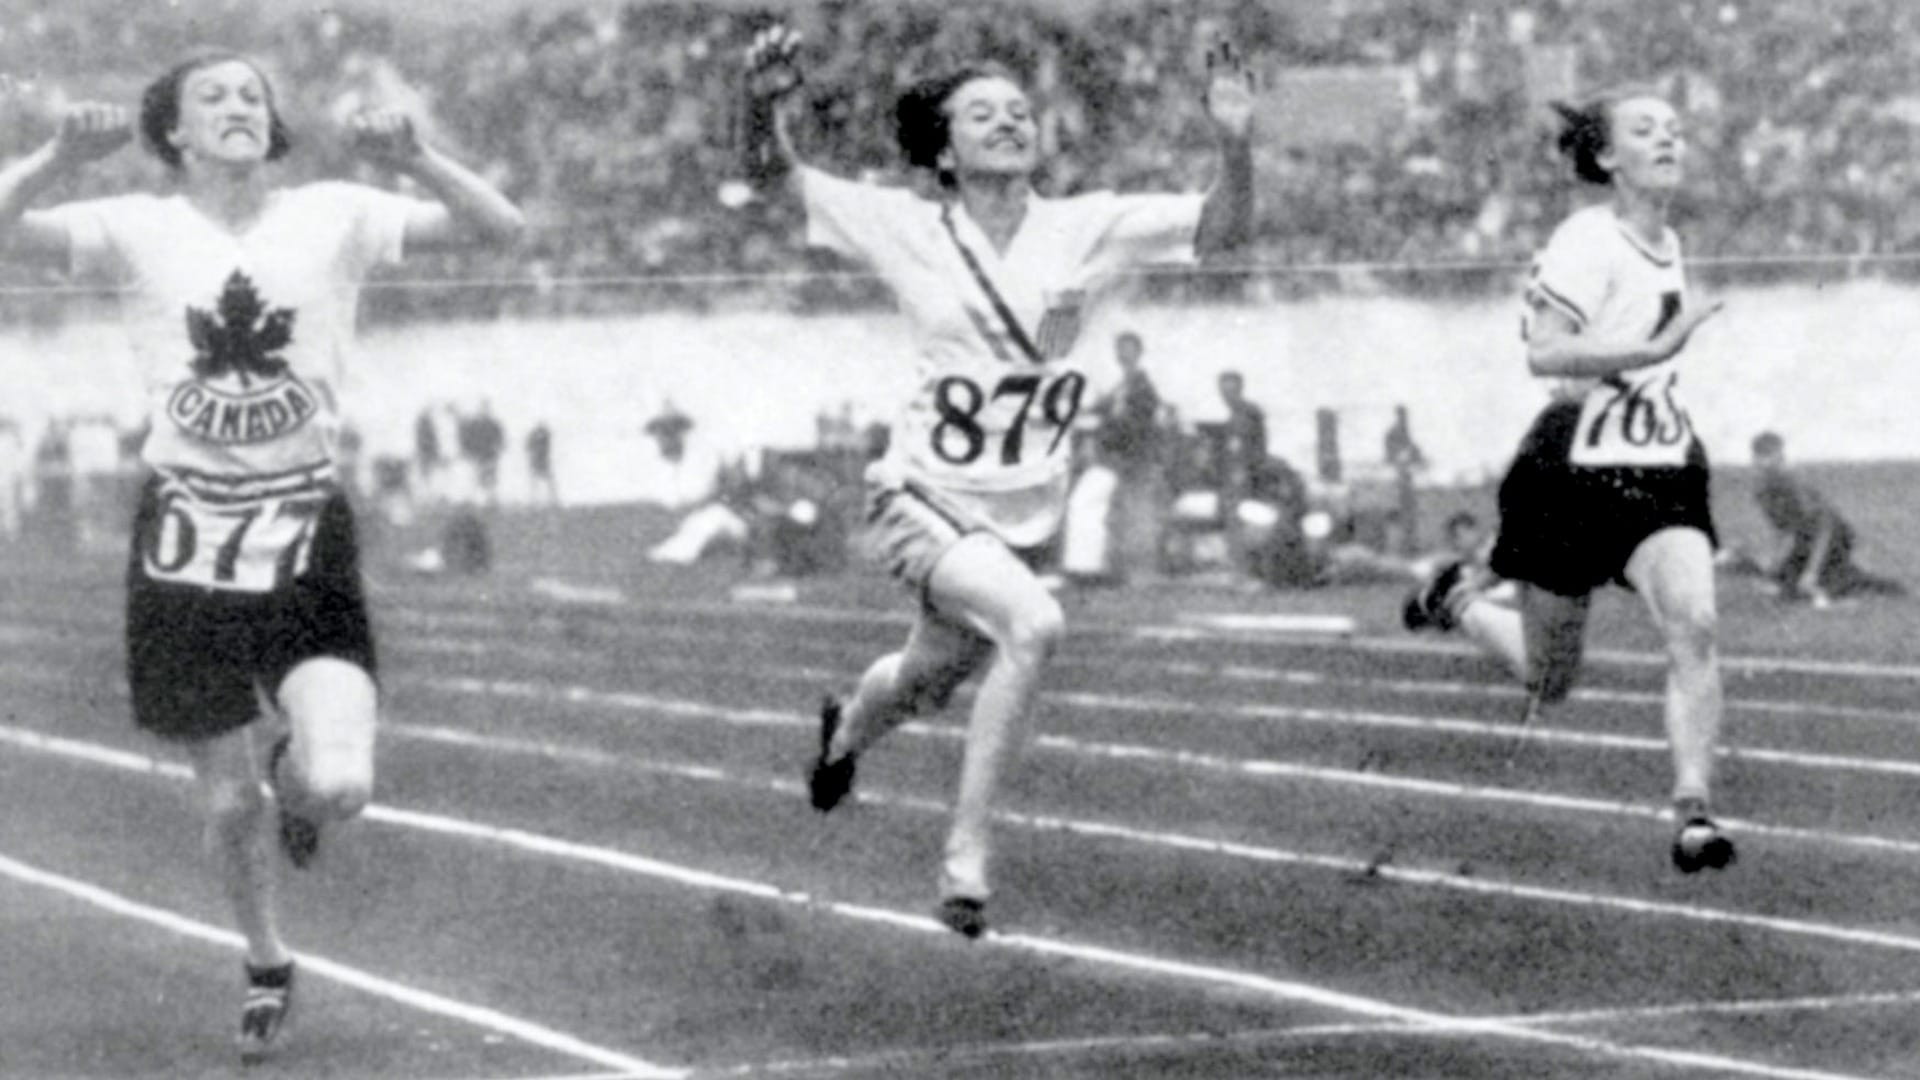 Betty Robinson raises her arms and exults as she crosses the finish line